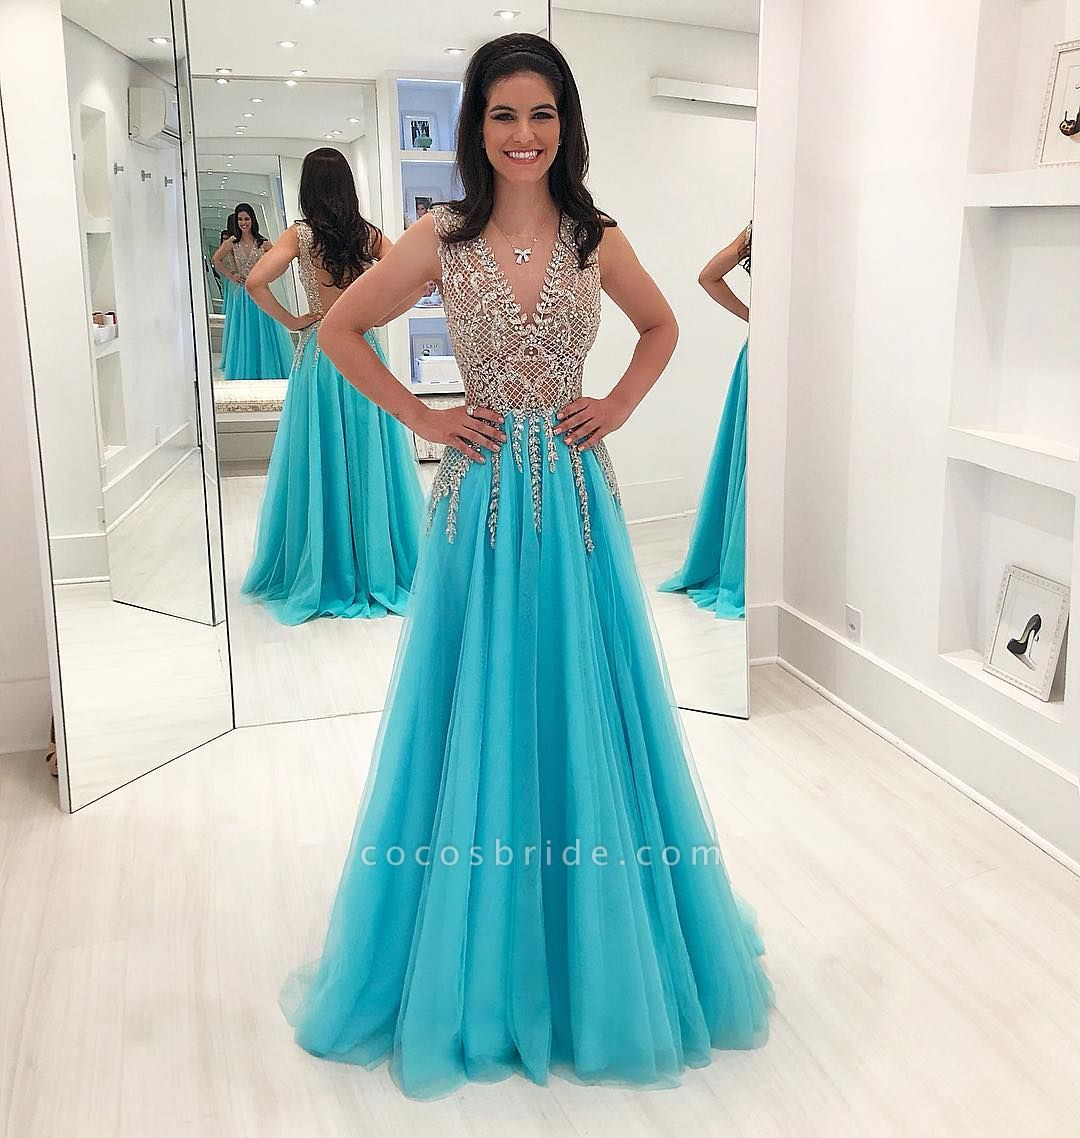 Exquisite Tulle A-line Prom Dress